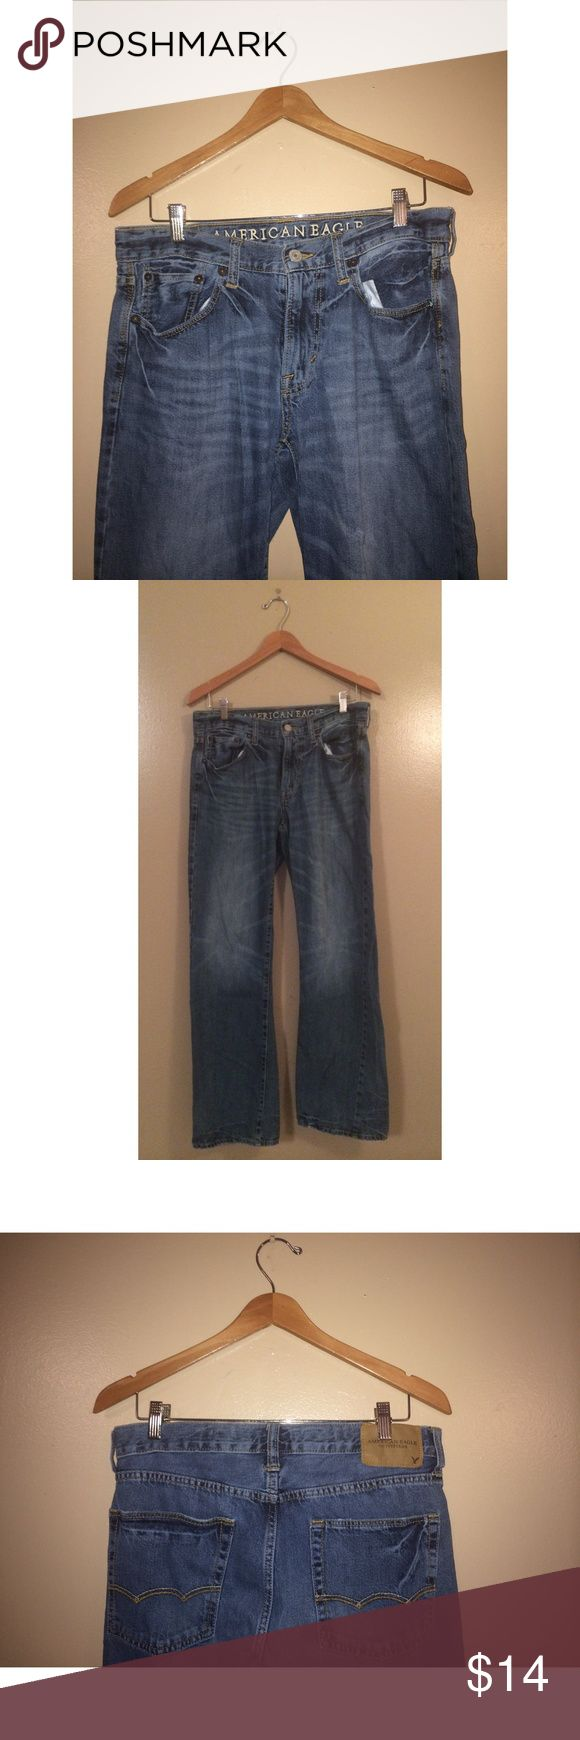 """American Eagle Bootcut Jeans for Men PRE-OWNED American Eagle """"Original Bootcut"""" Jeans for Men. Size 32/32, Great condition! American Eagle Outfitters Jeans Bootcut"""